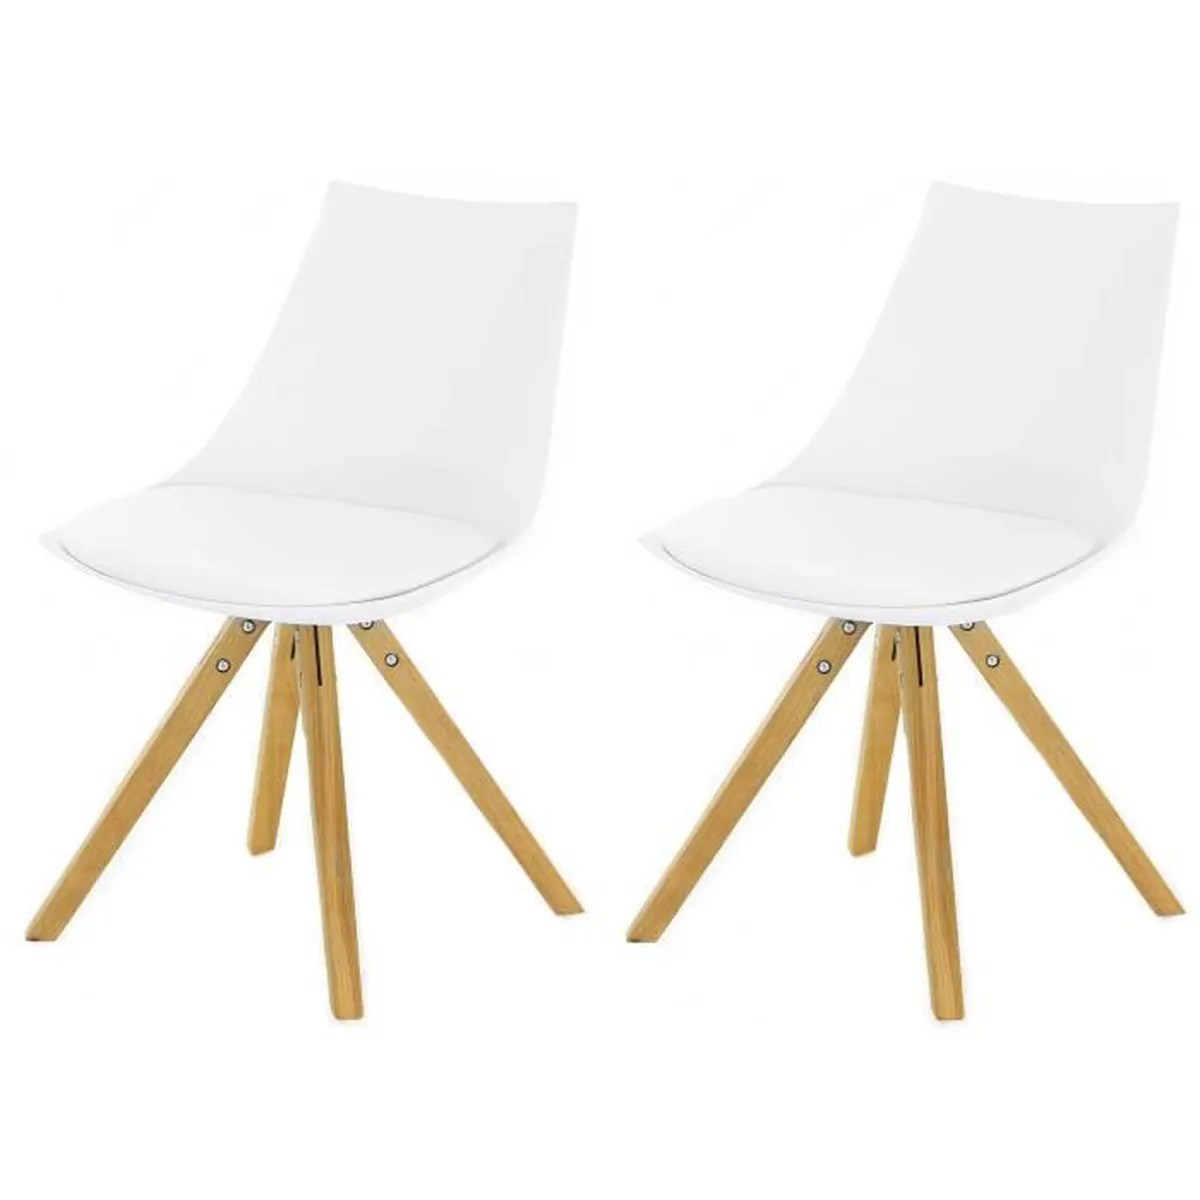 Chaises Blanche Scandinave Lot De 2 Chaises Scandinaves Blanche Turin